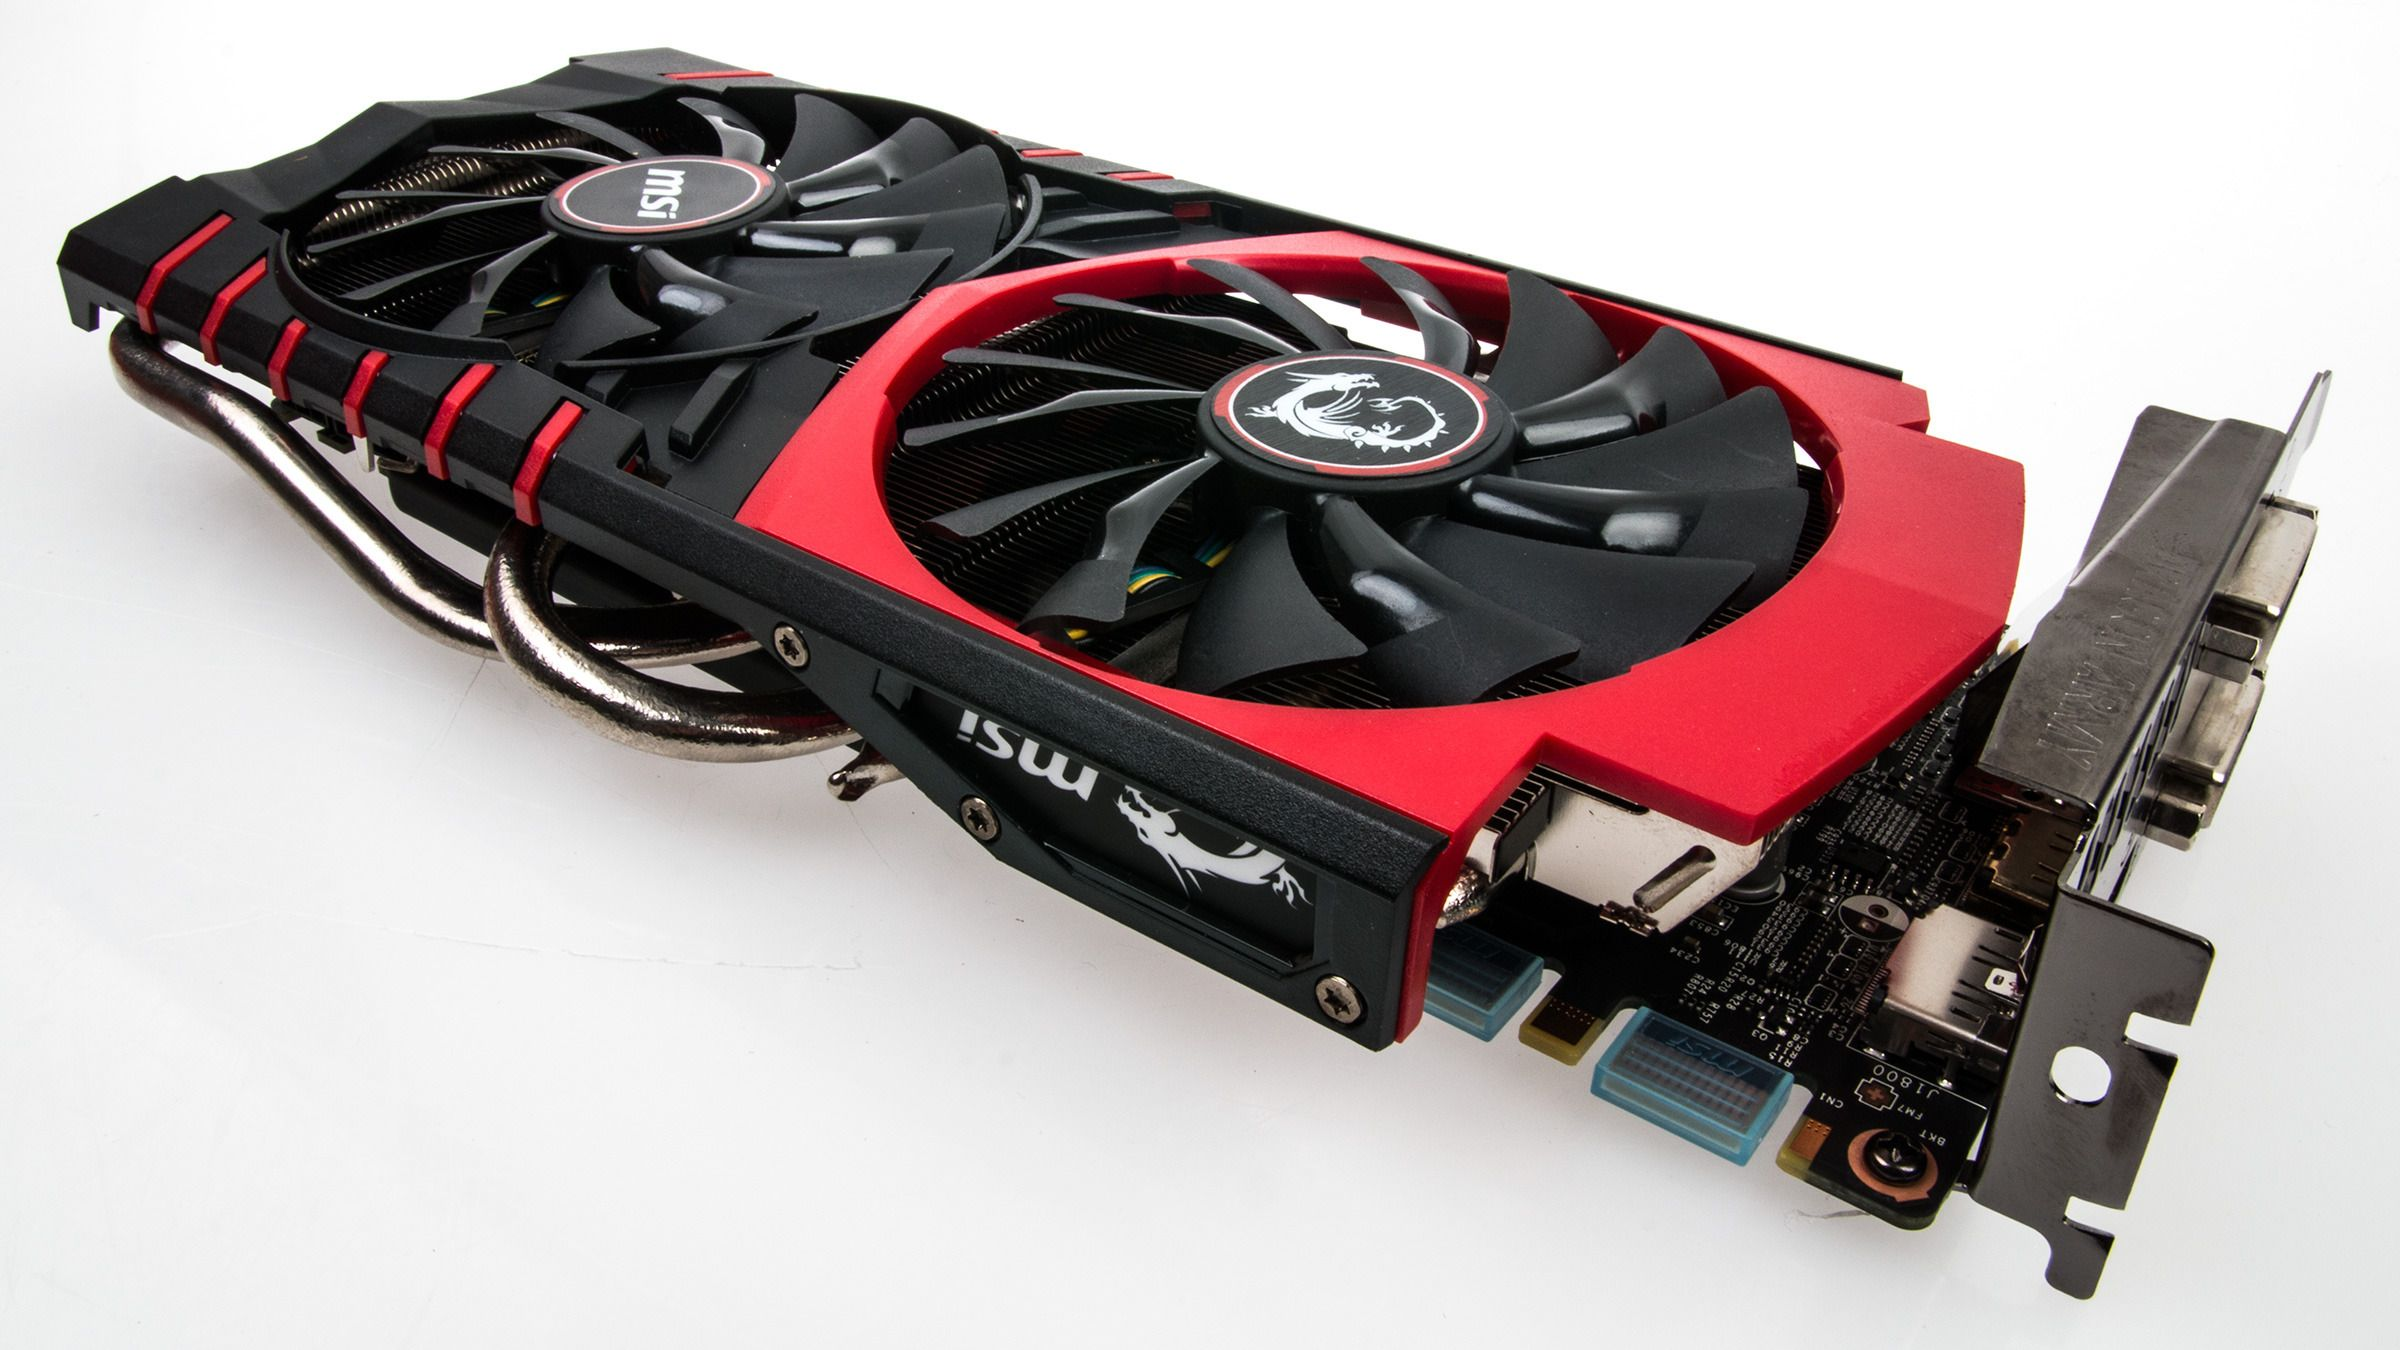 MSI GeForce GTX 970 Gaming 4G Twin Frozr V.Foto: Varg Aamo, Tek.no